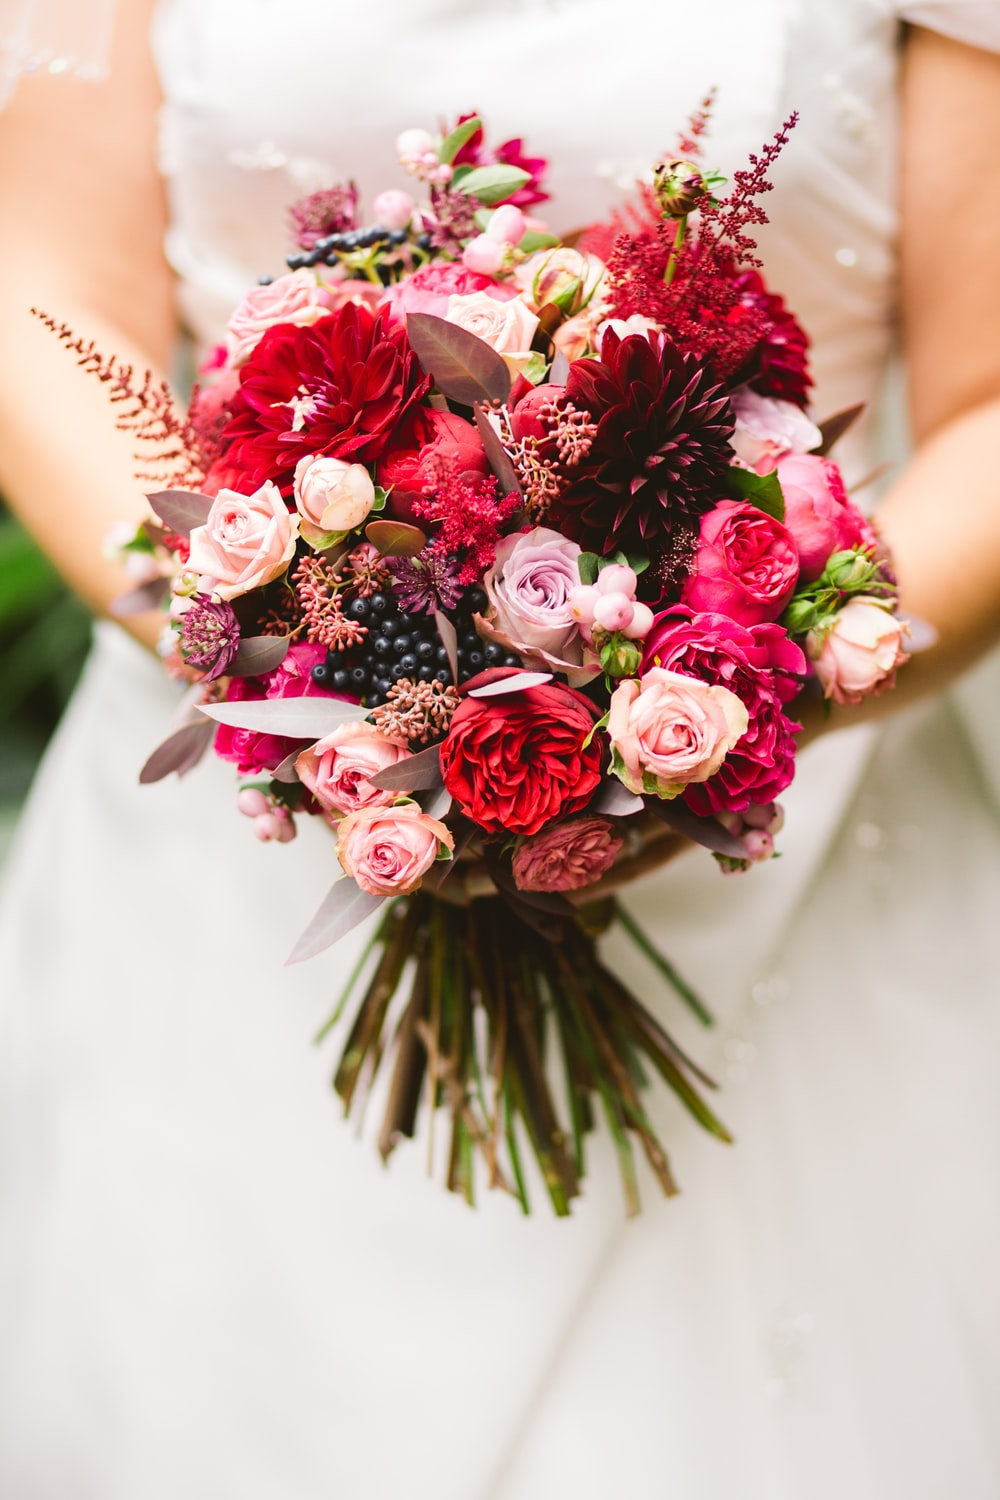 500 bouquet pictures download free images on unsplash bride holding flower bouquet izmirmasajfo